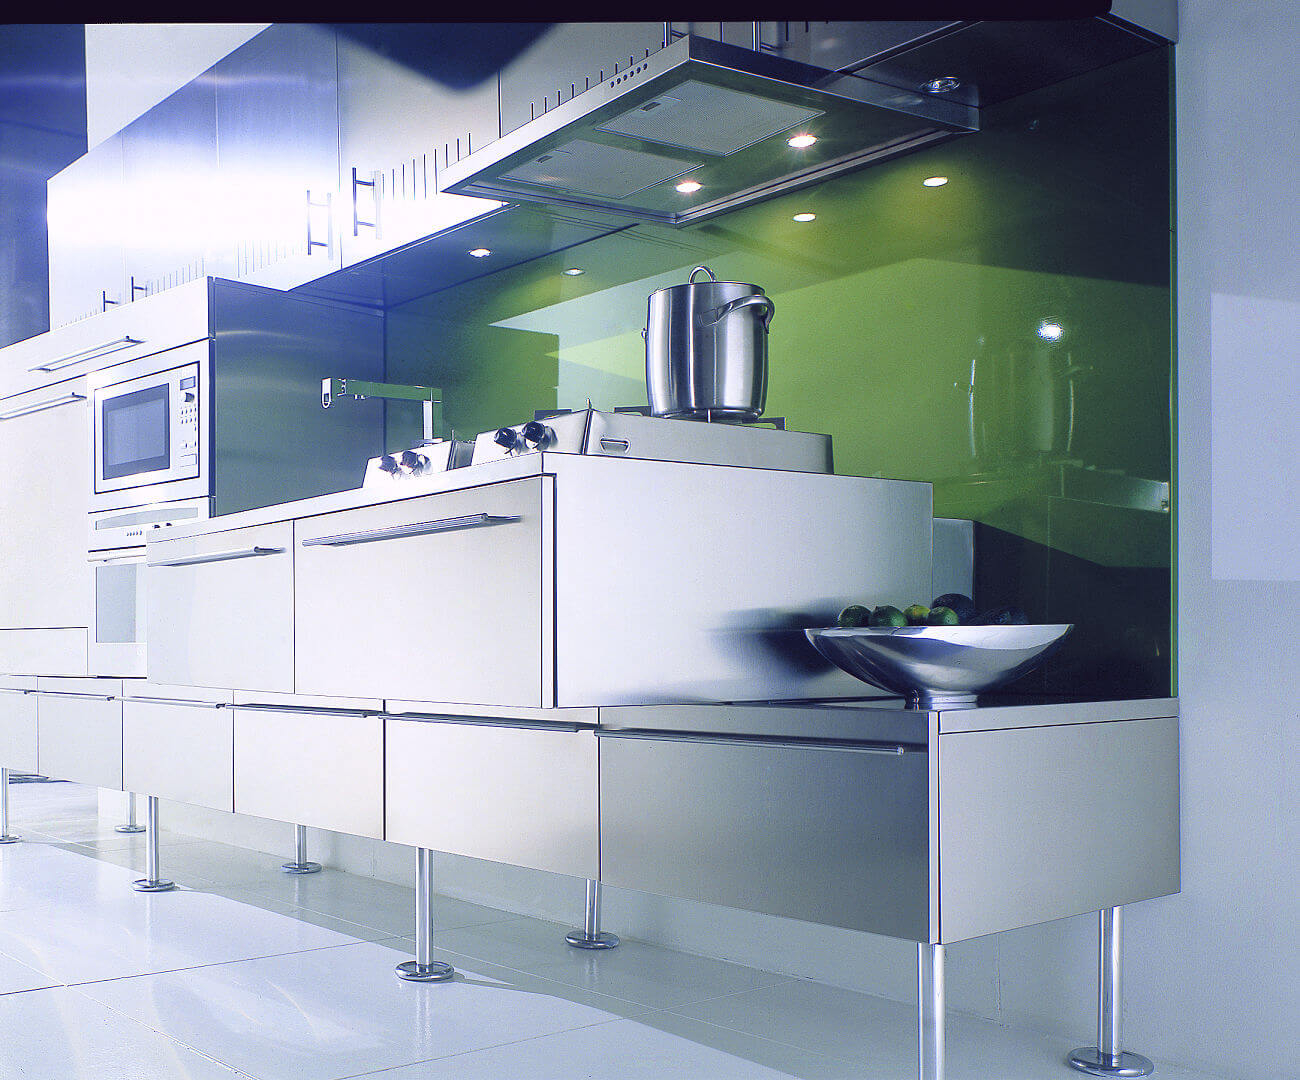 Arca Cucine Italy - Kitchen Stainless Steel Customized - Feet